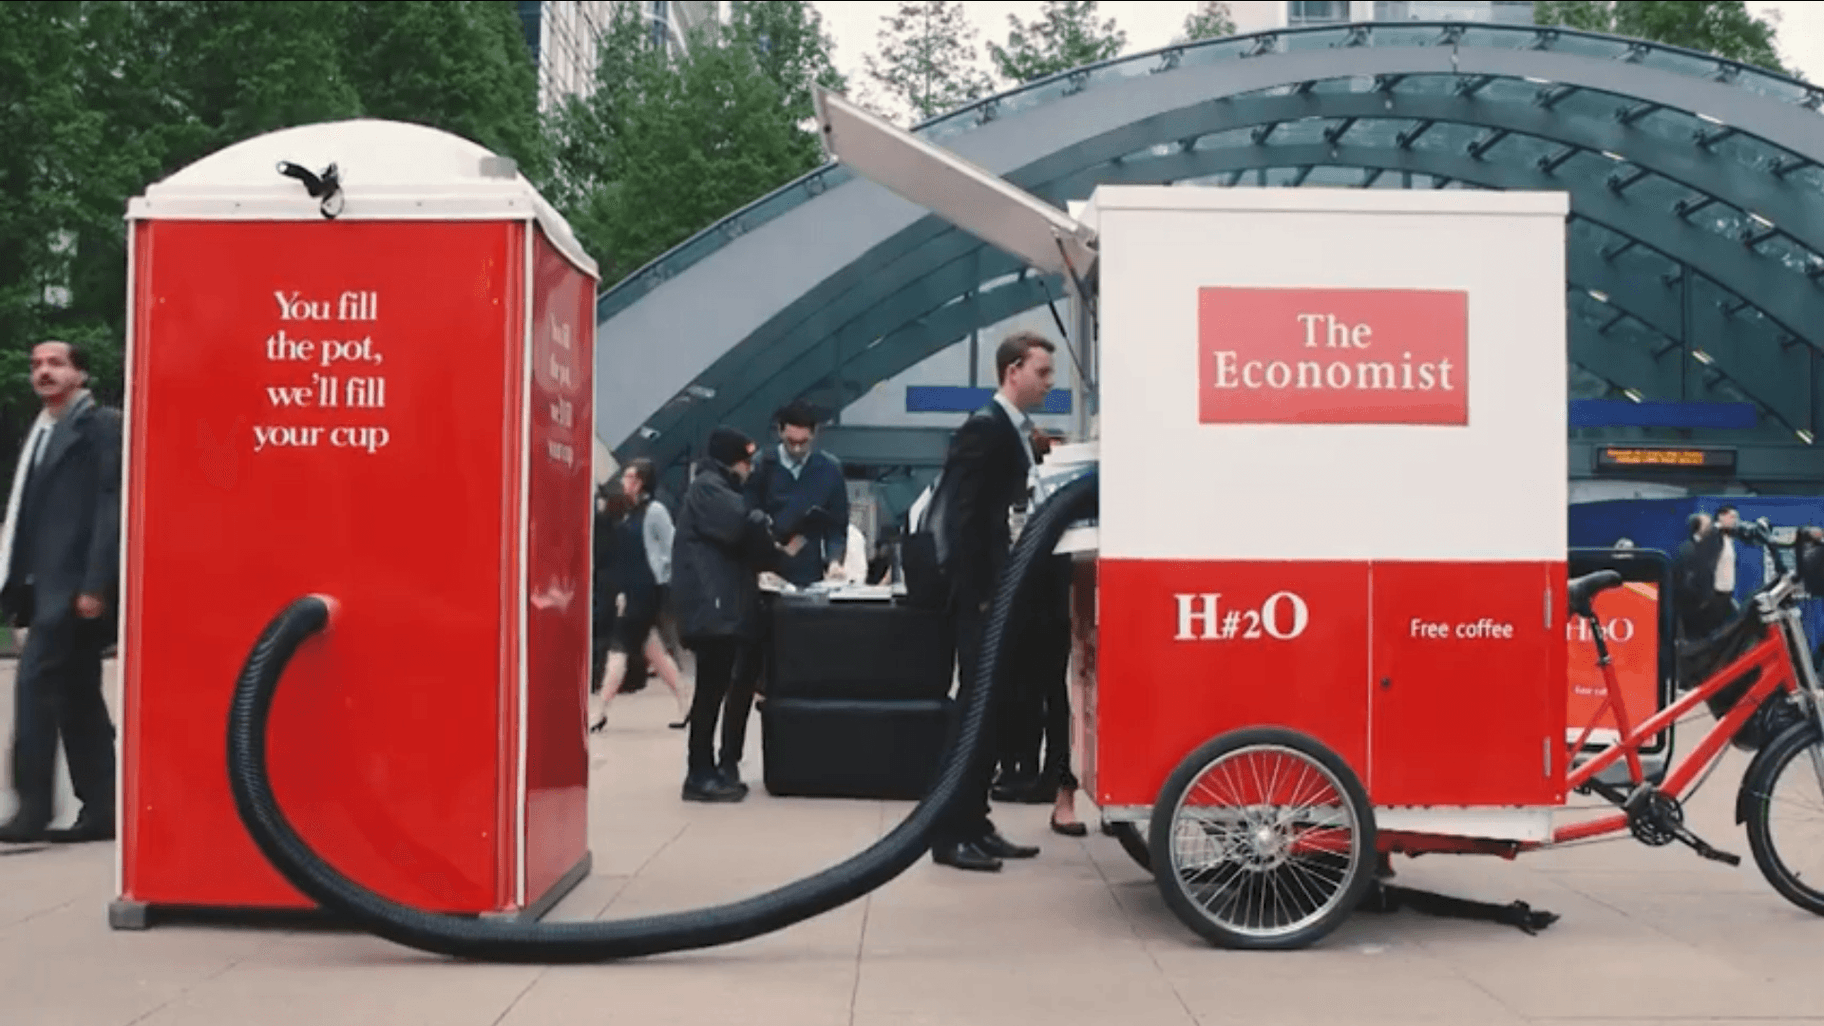 The Economist's experiential marketing